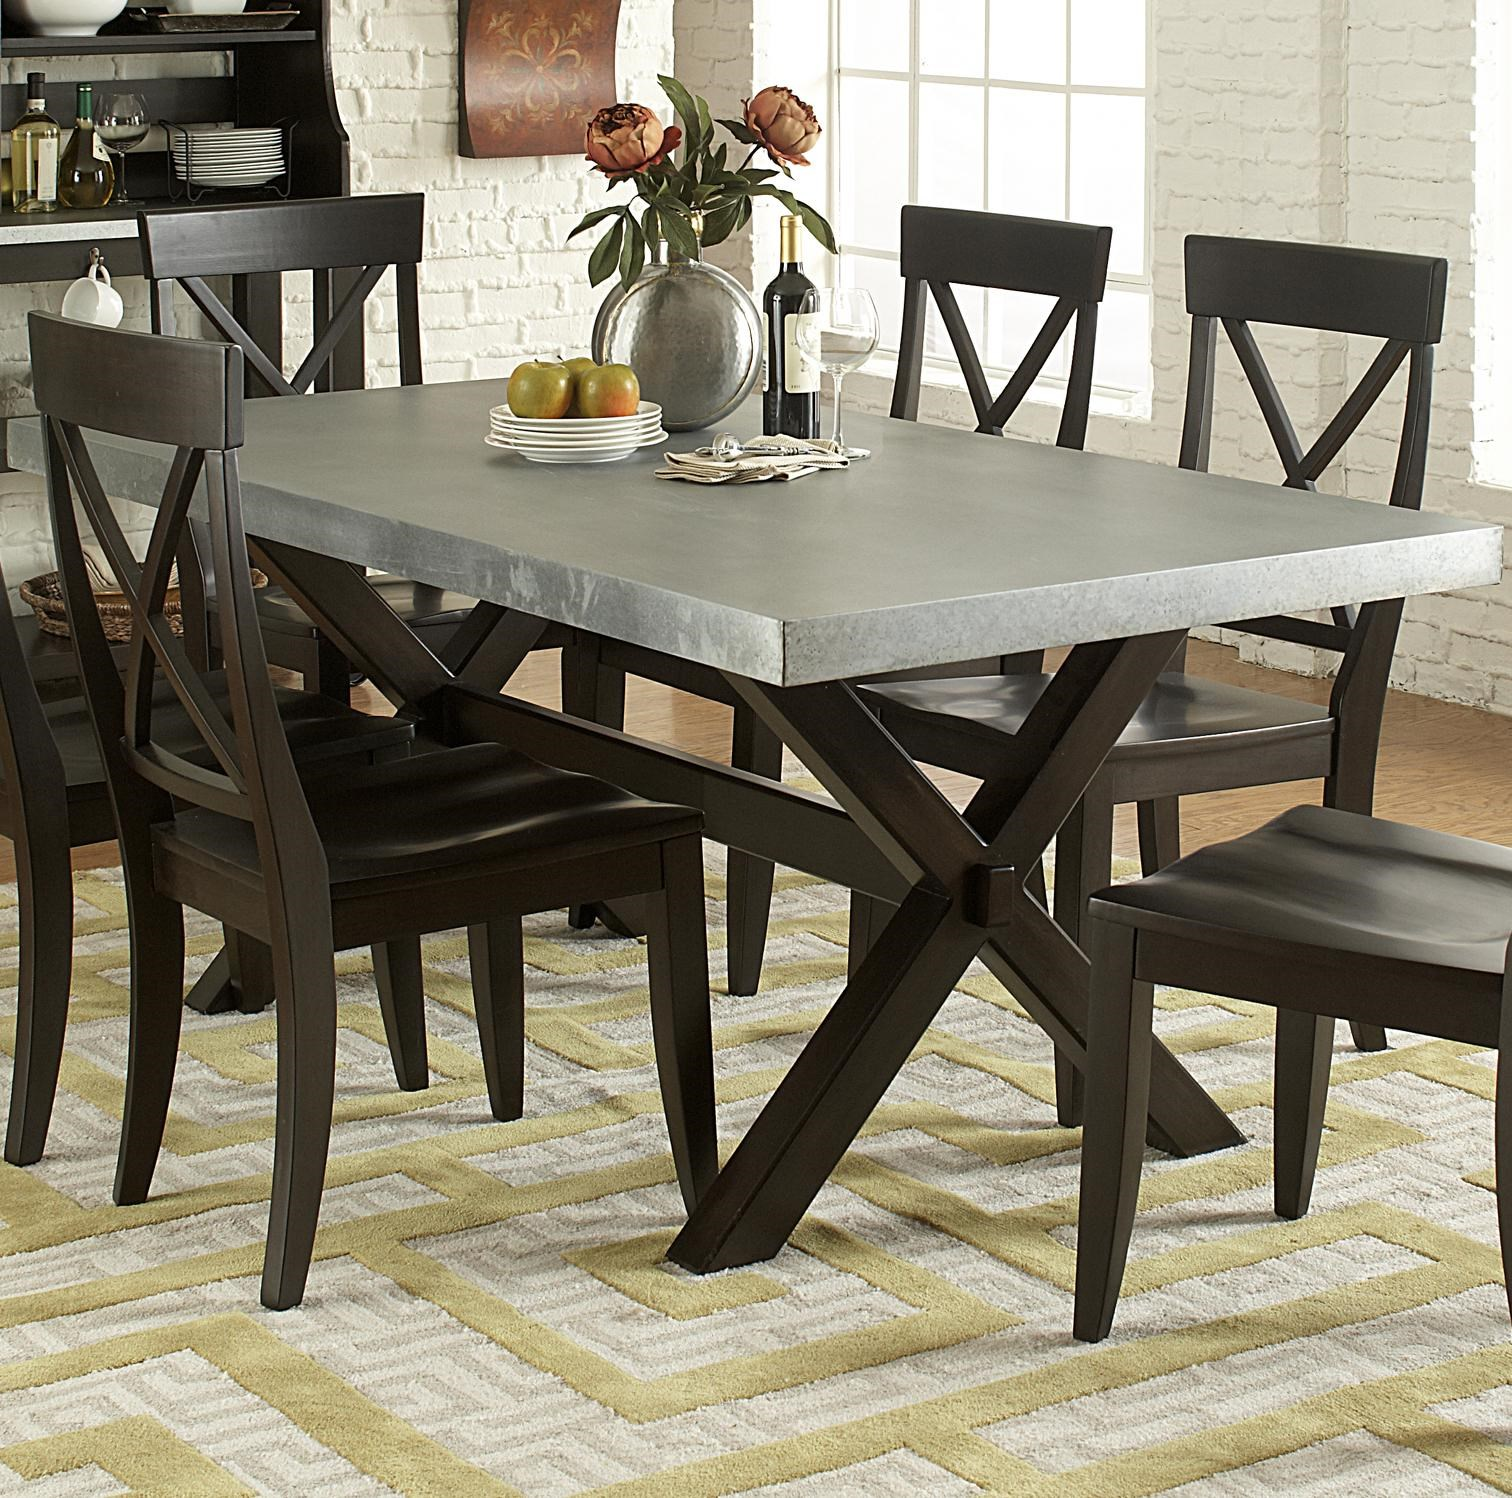 Liberty Furniture Keaton IIRectangle Trestle Table